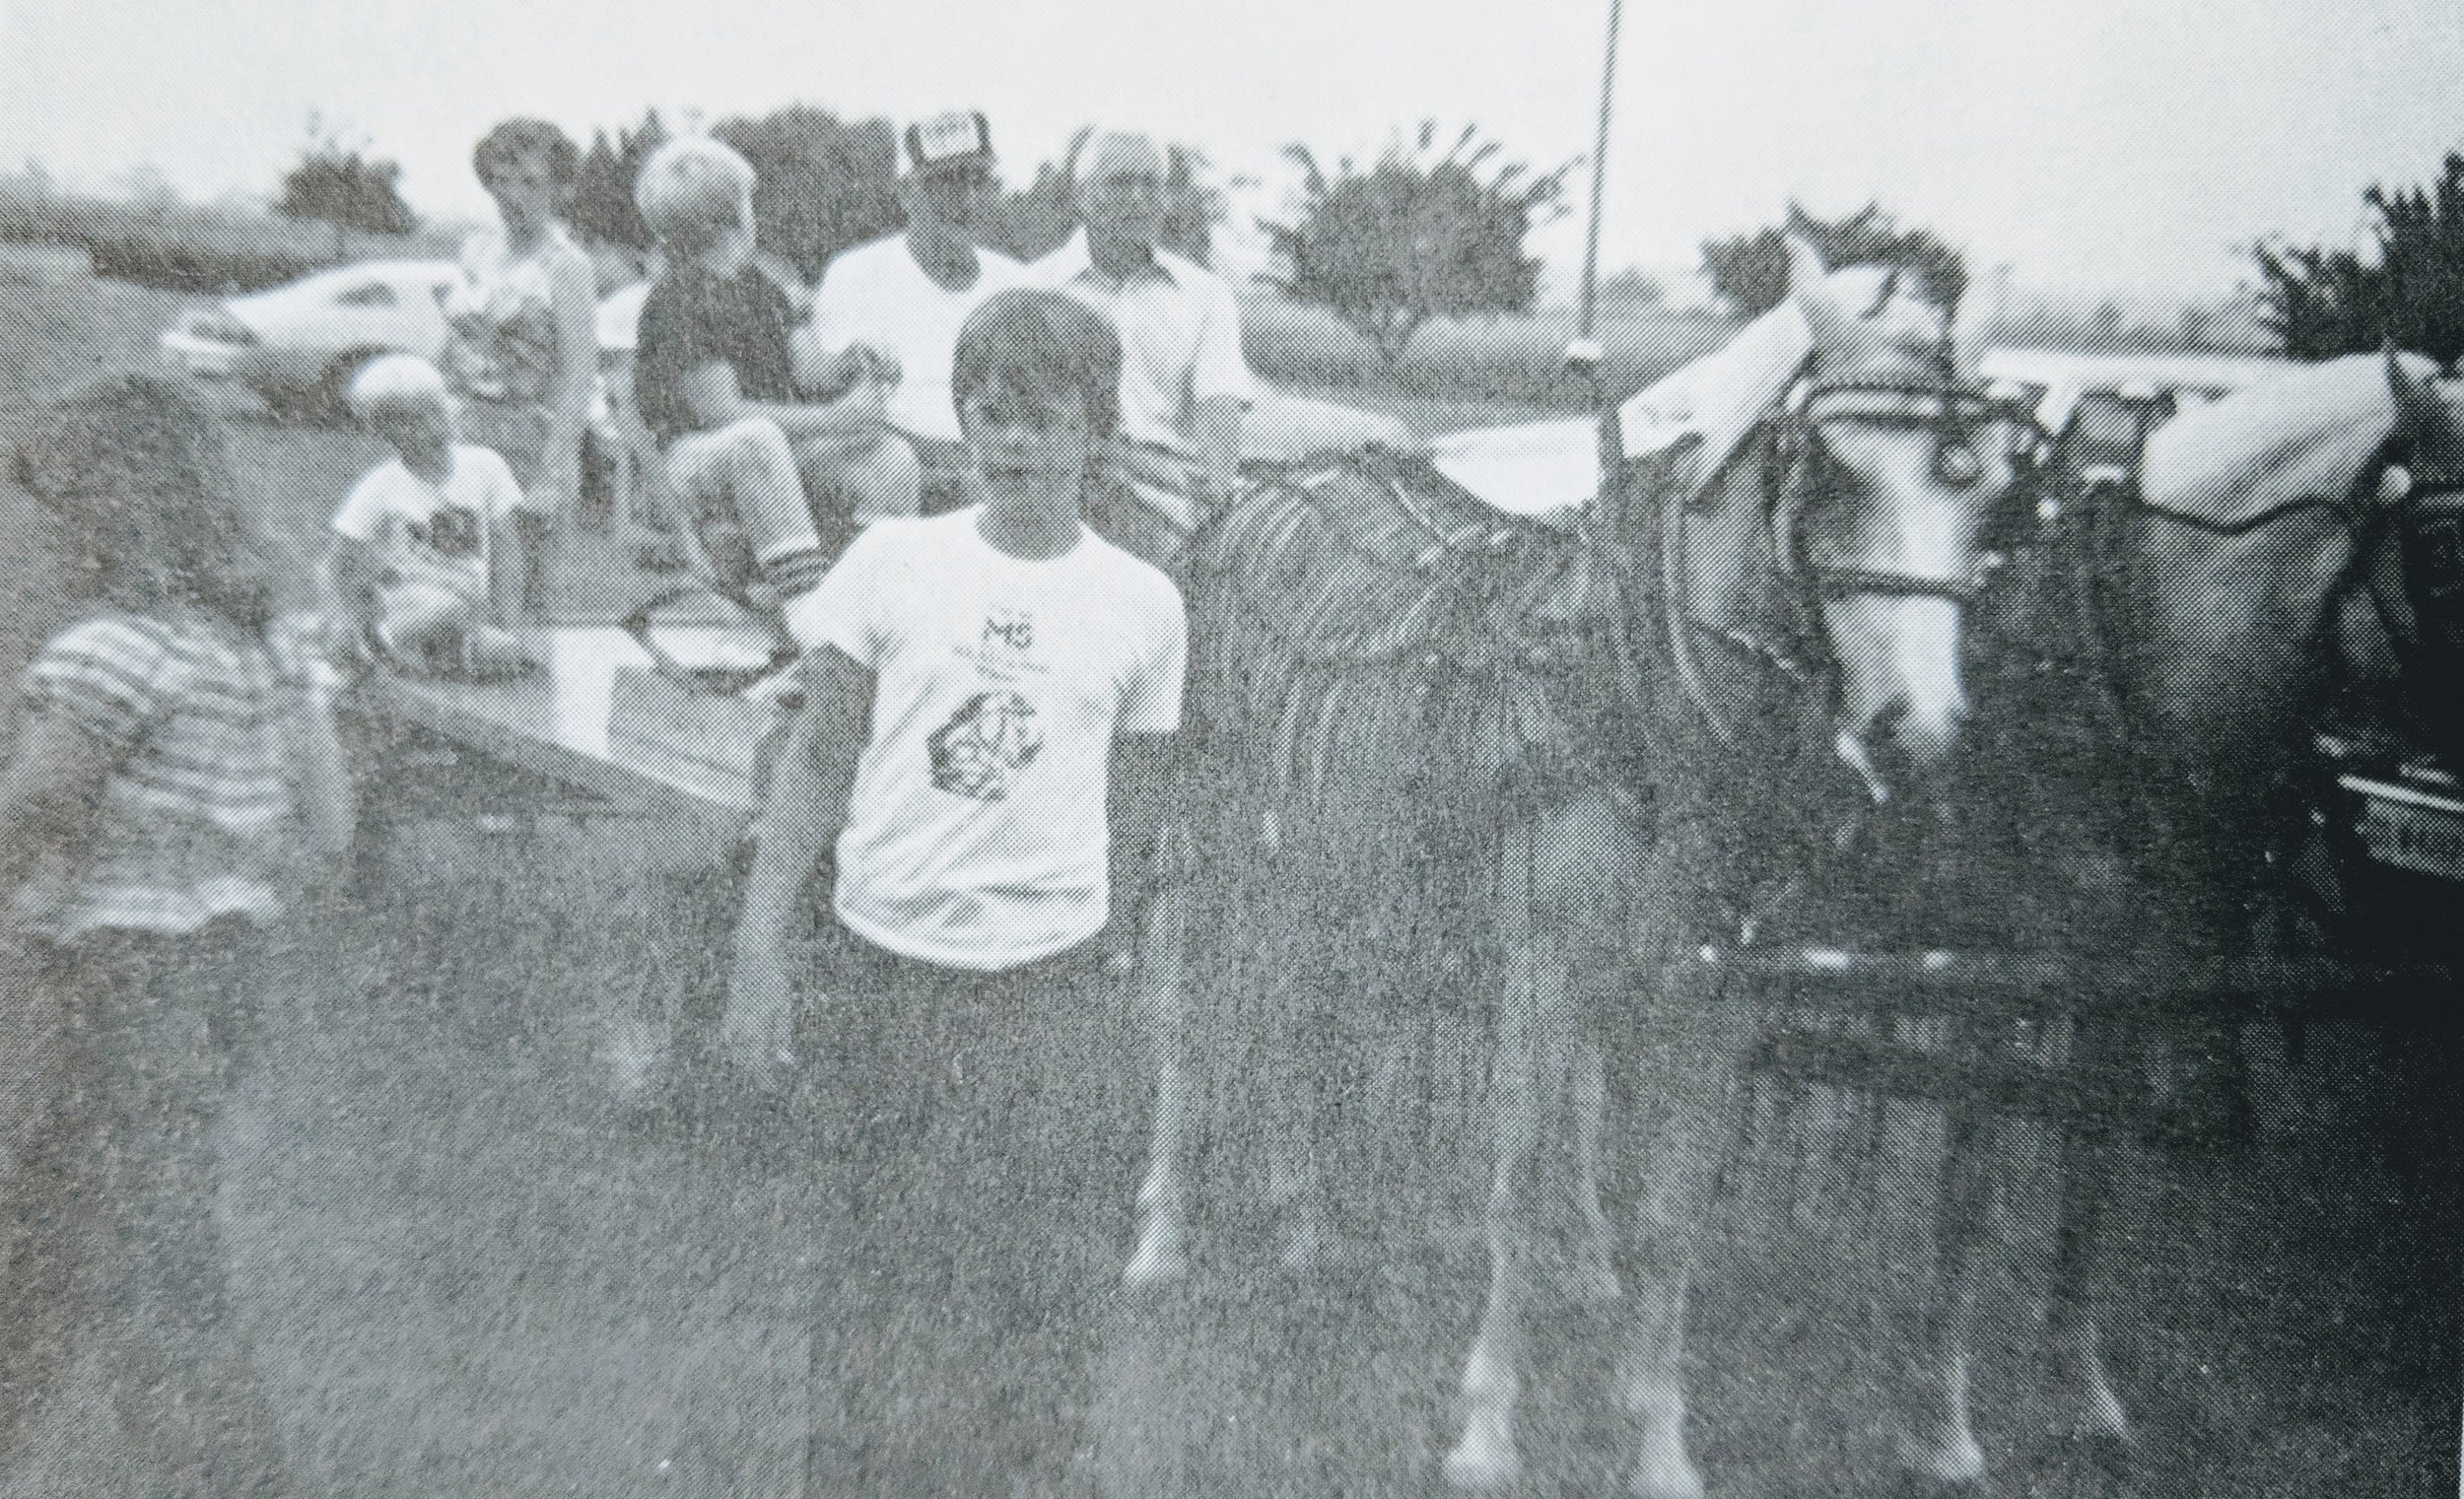 Sunday School Picnic - June 1982 Virgil Vajen, assisted by Paul Franz, gave the children pony wagon rides